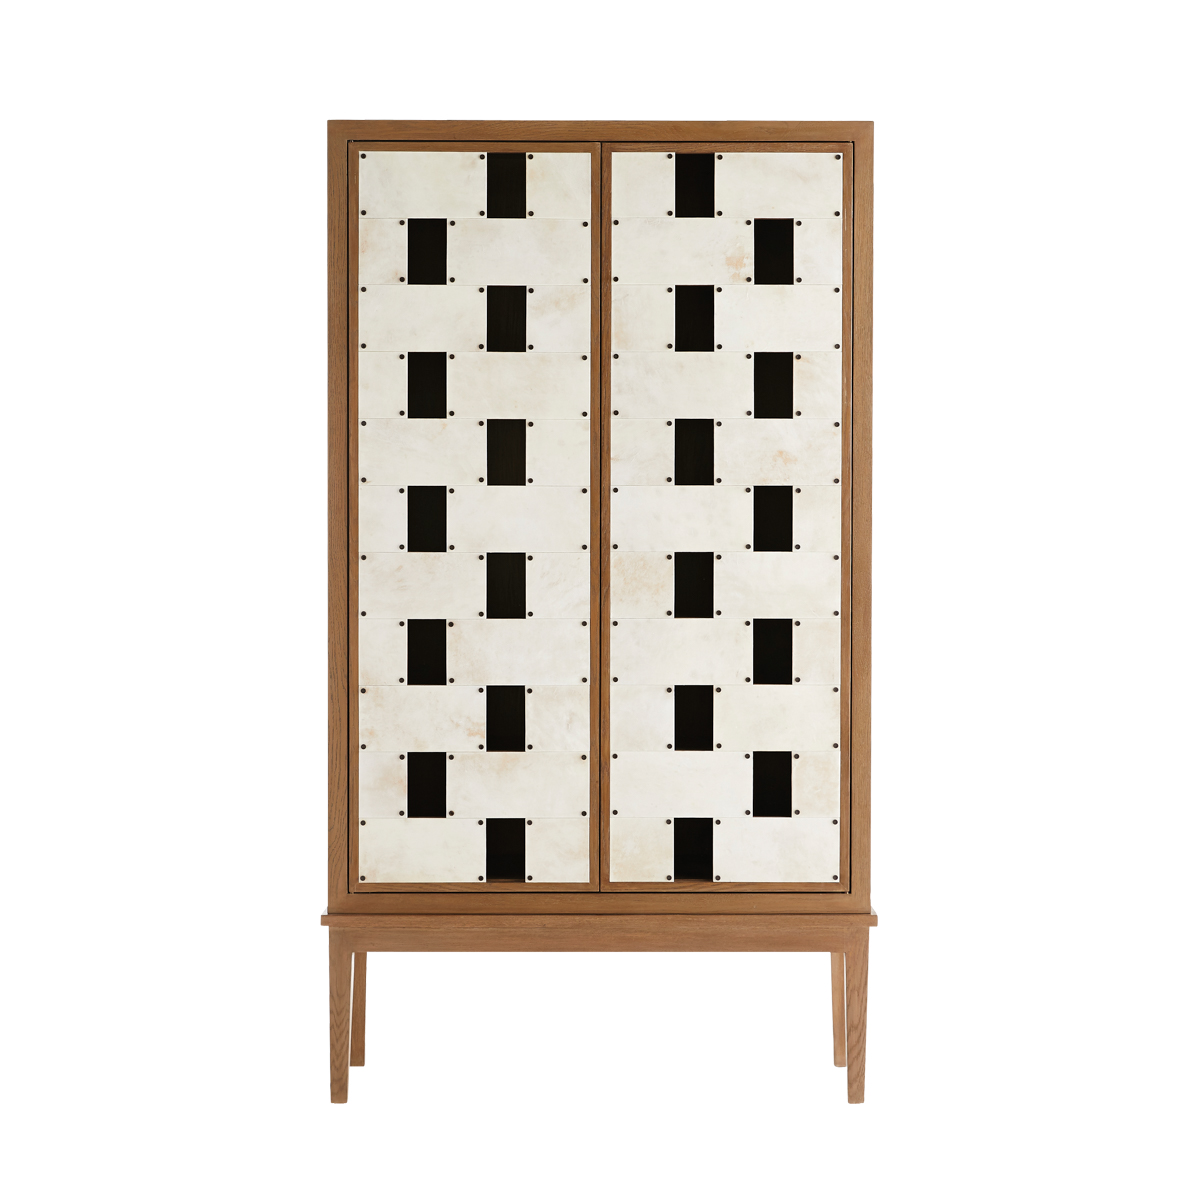 Ponterio's white-oak Salotto Cabinet, the crown jewel of the collection, was inspired by a pair of bronze doors at the Villa Necchi in Milan.